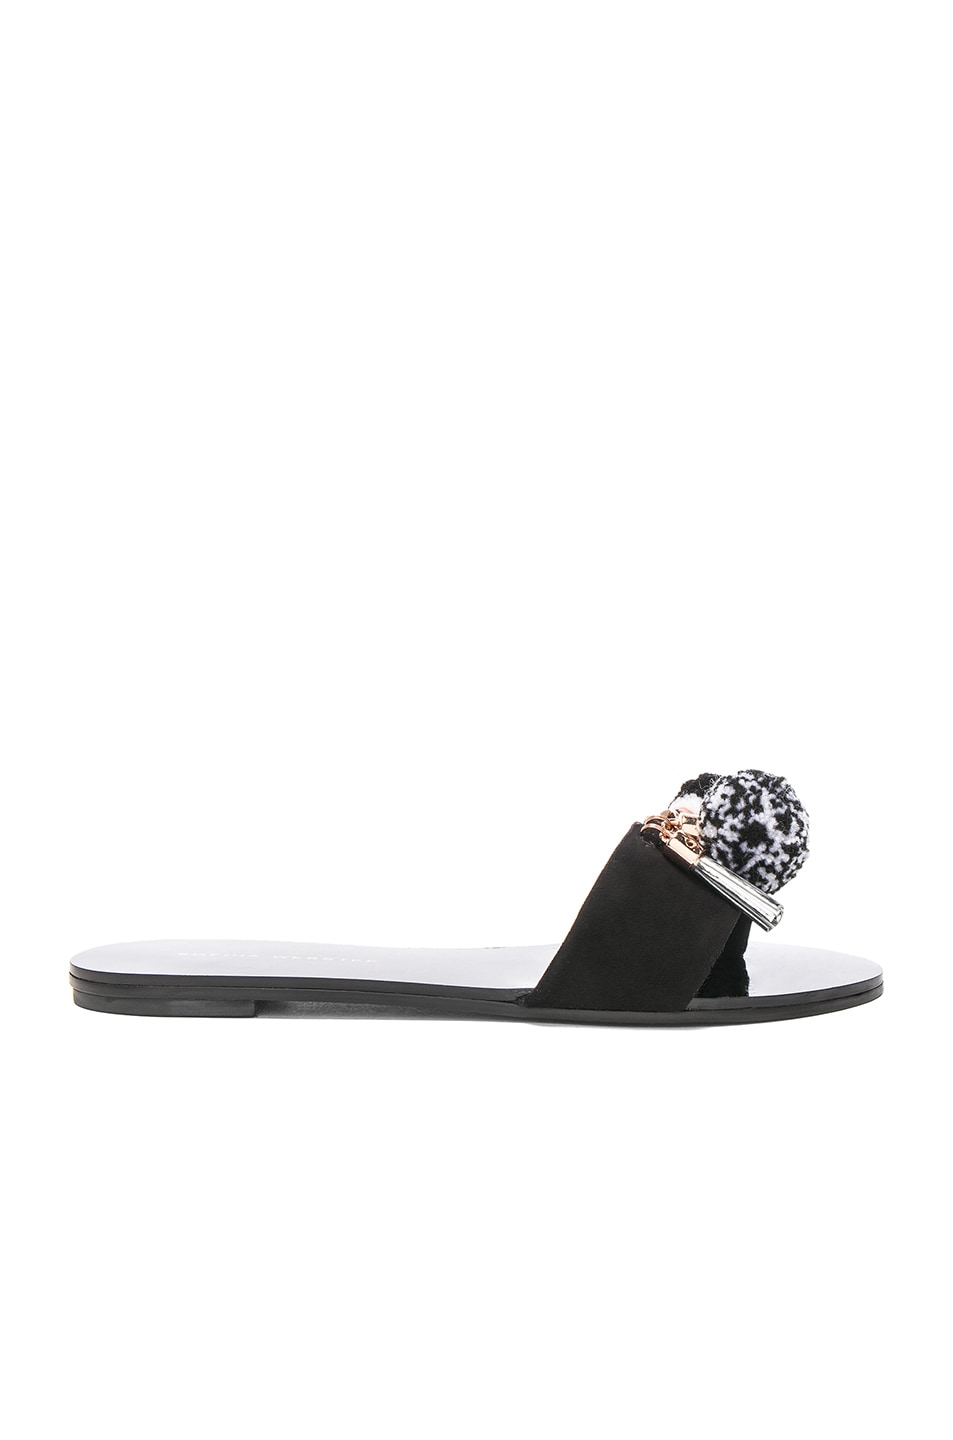 Image 1 of Sophia Webster Suede Jada Pom Pom Slides in Cookies & Cream